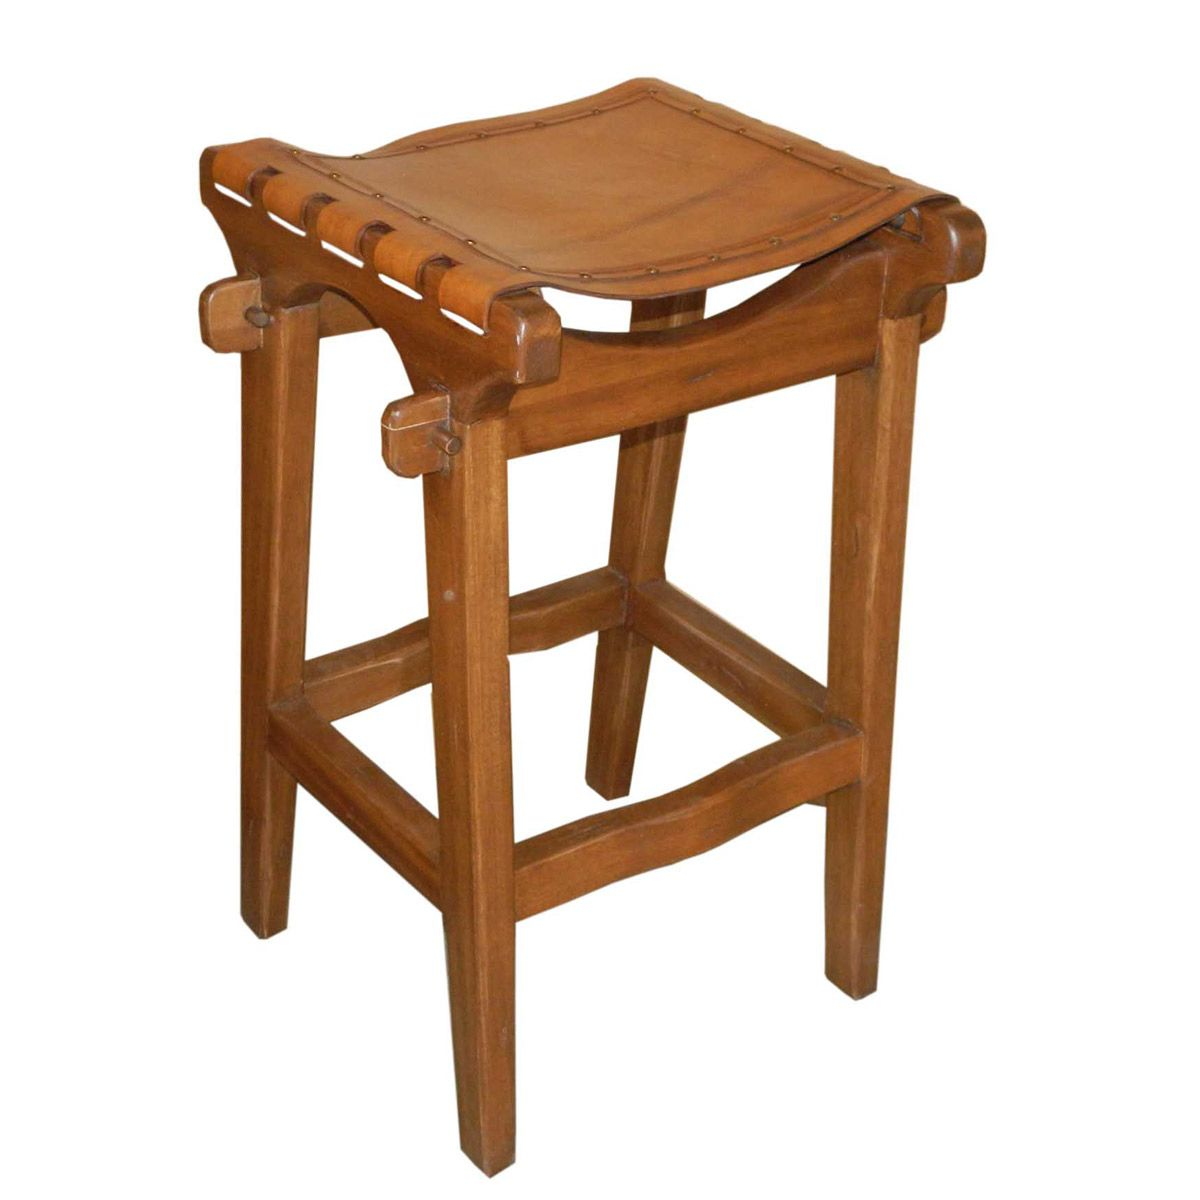 Santa Fe Rustic Brown Barstool with Nail Heads